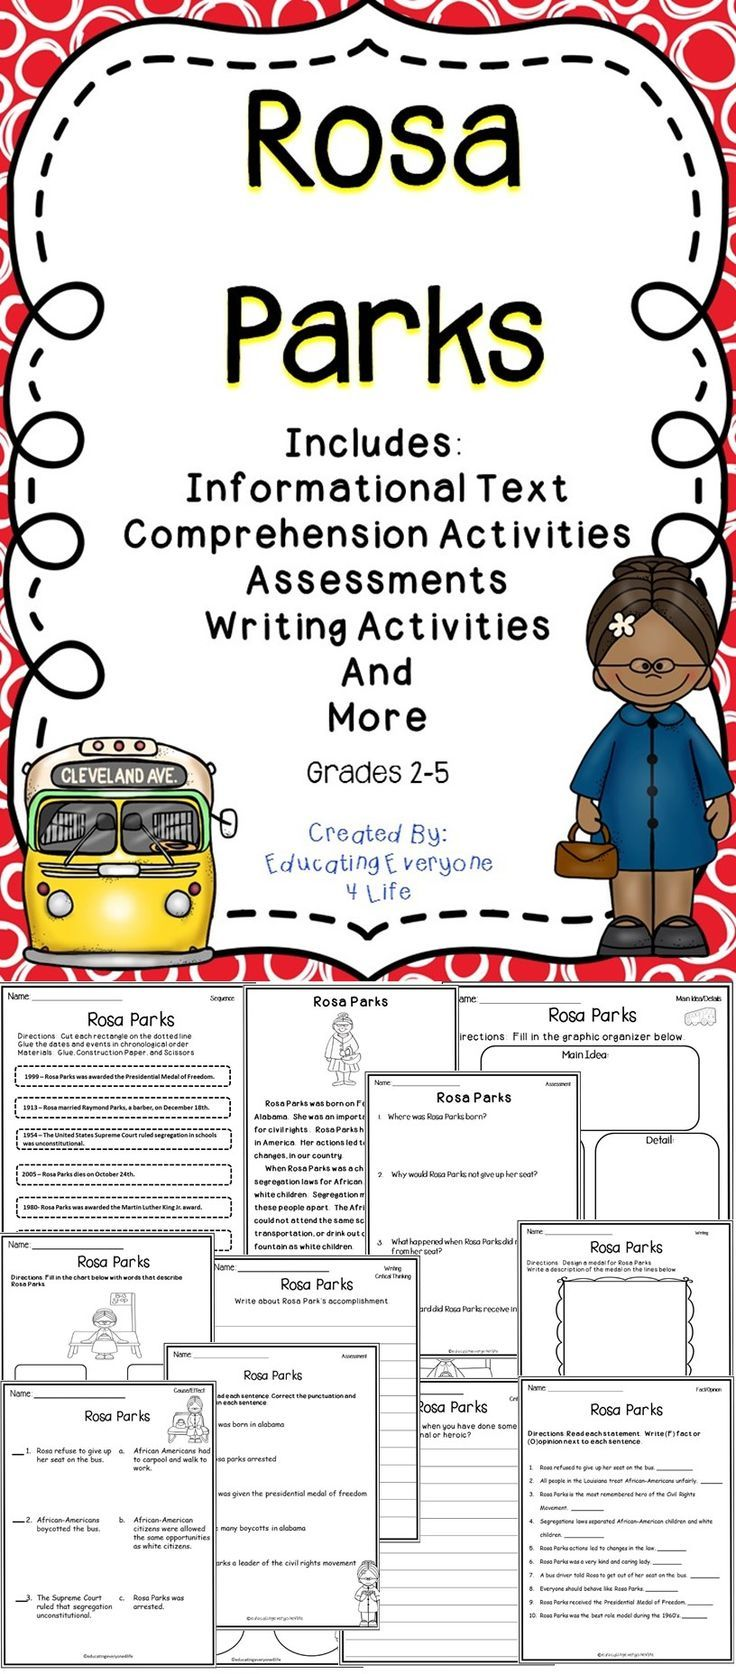 rosa parks my story book report My story by rosa parks and jim haskins is an amazing book that brings readers further into rosa park.